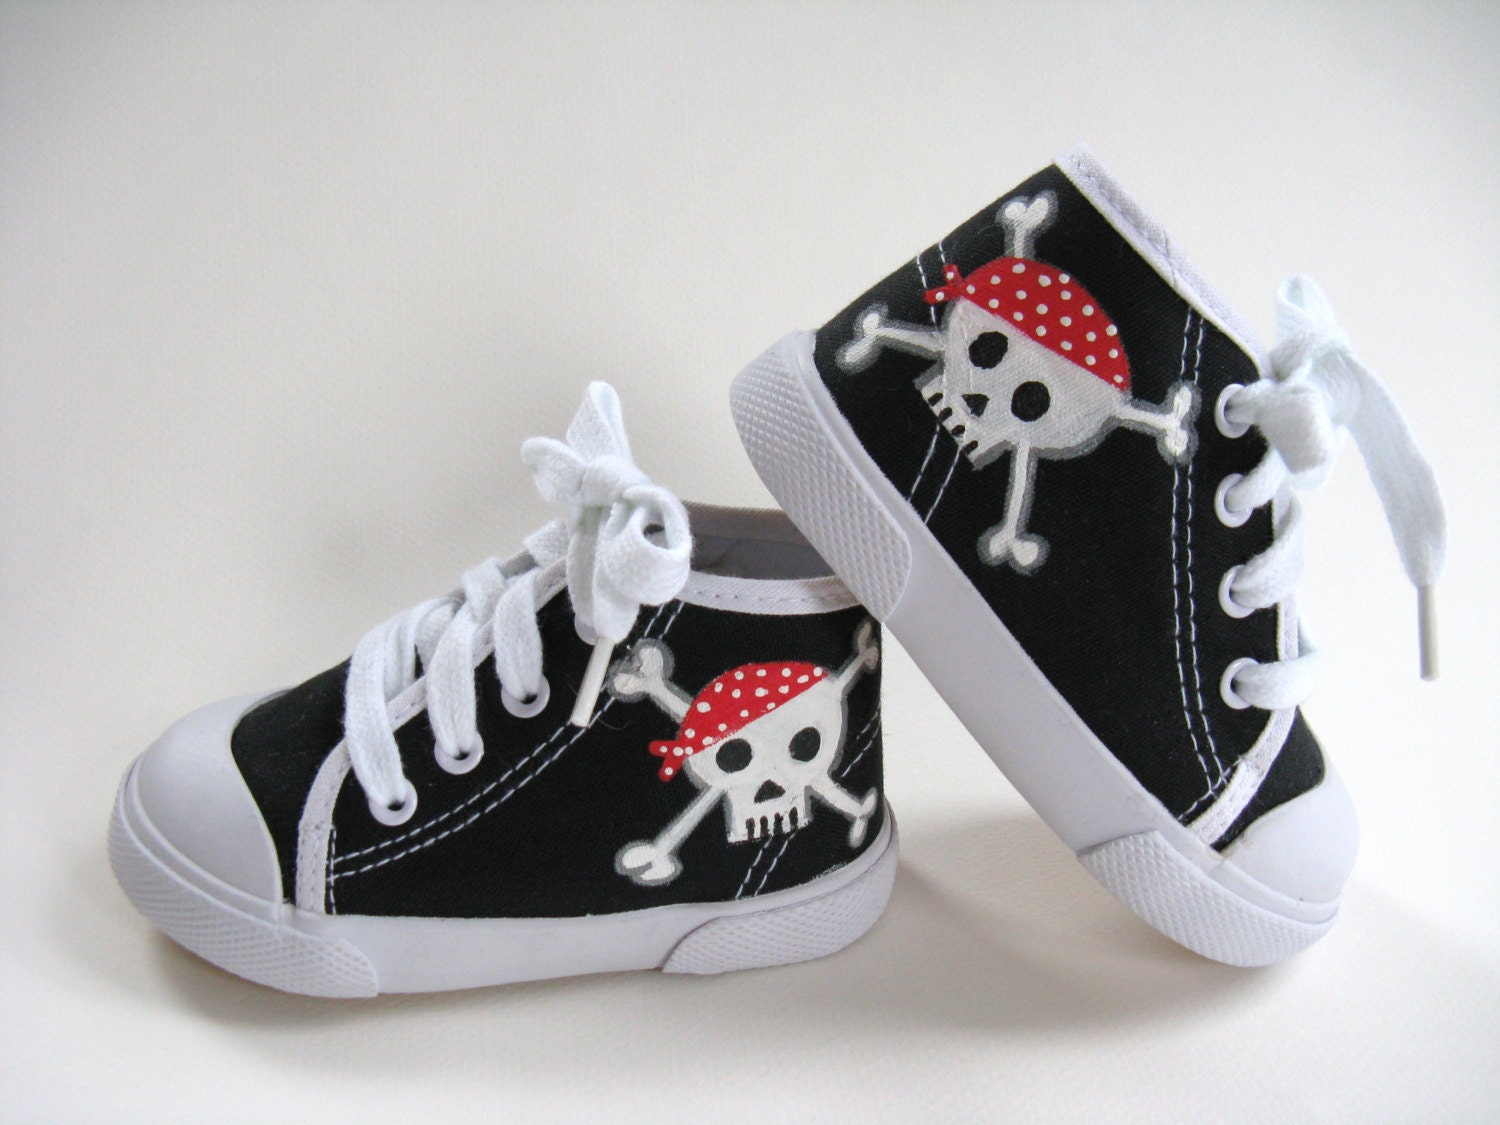 Boys Pirate Shoes, Baby and Toddler, Skull and Crossbones, Hand Painted, Black Hi Top Sneakers - boygirlboygirldesign